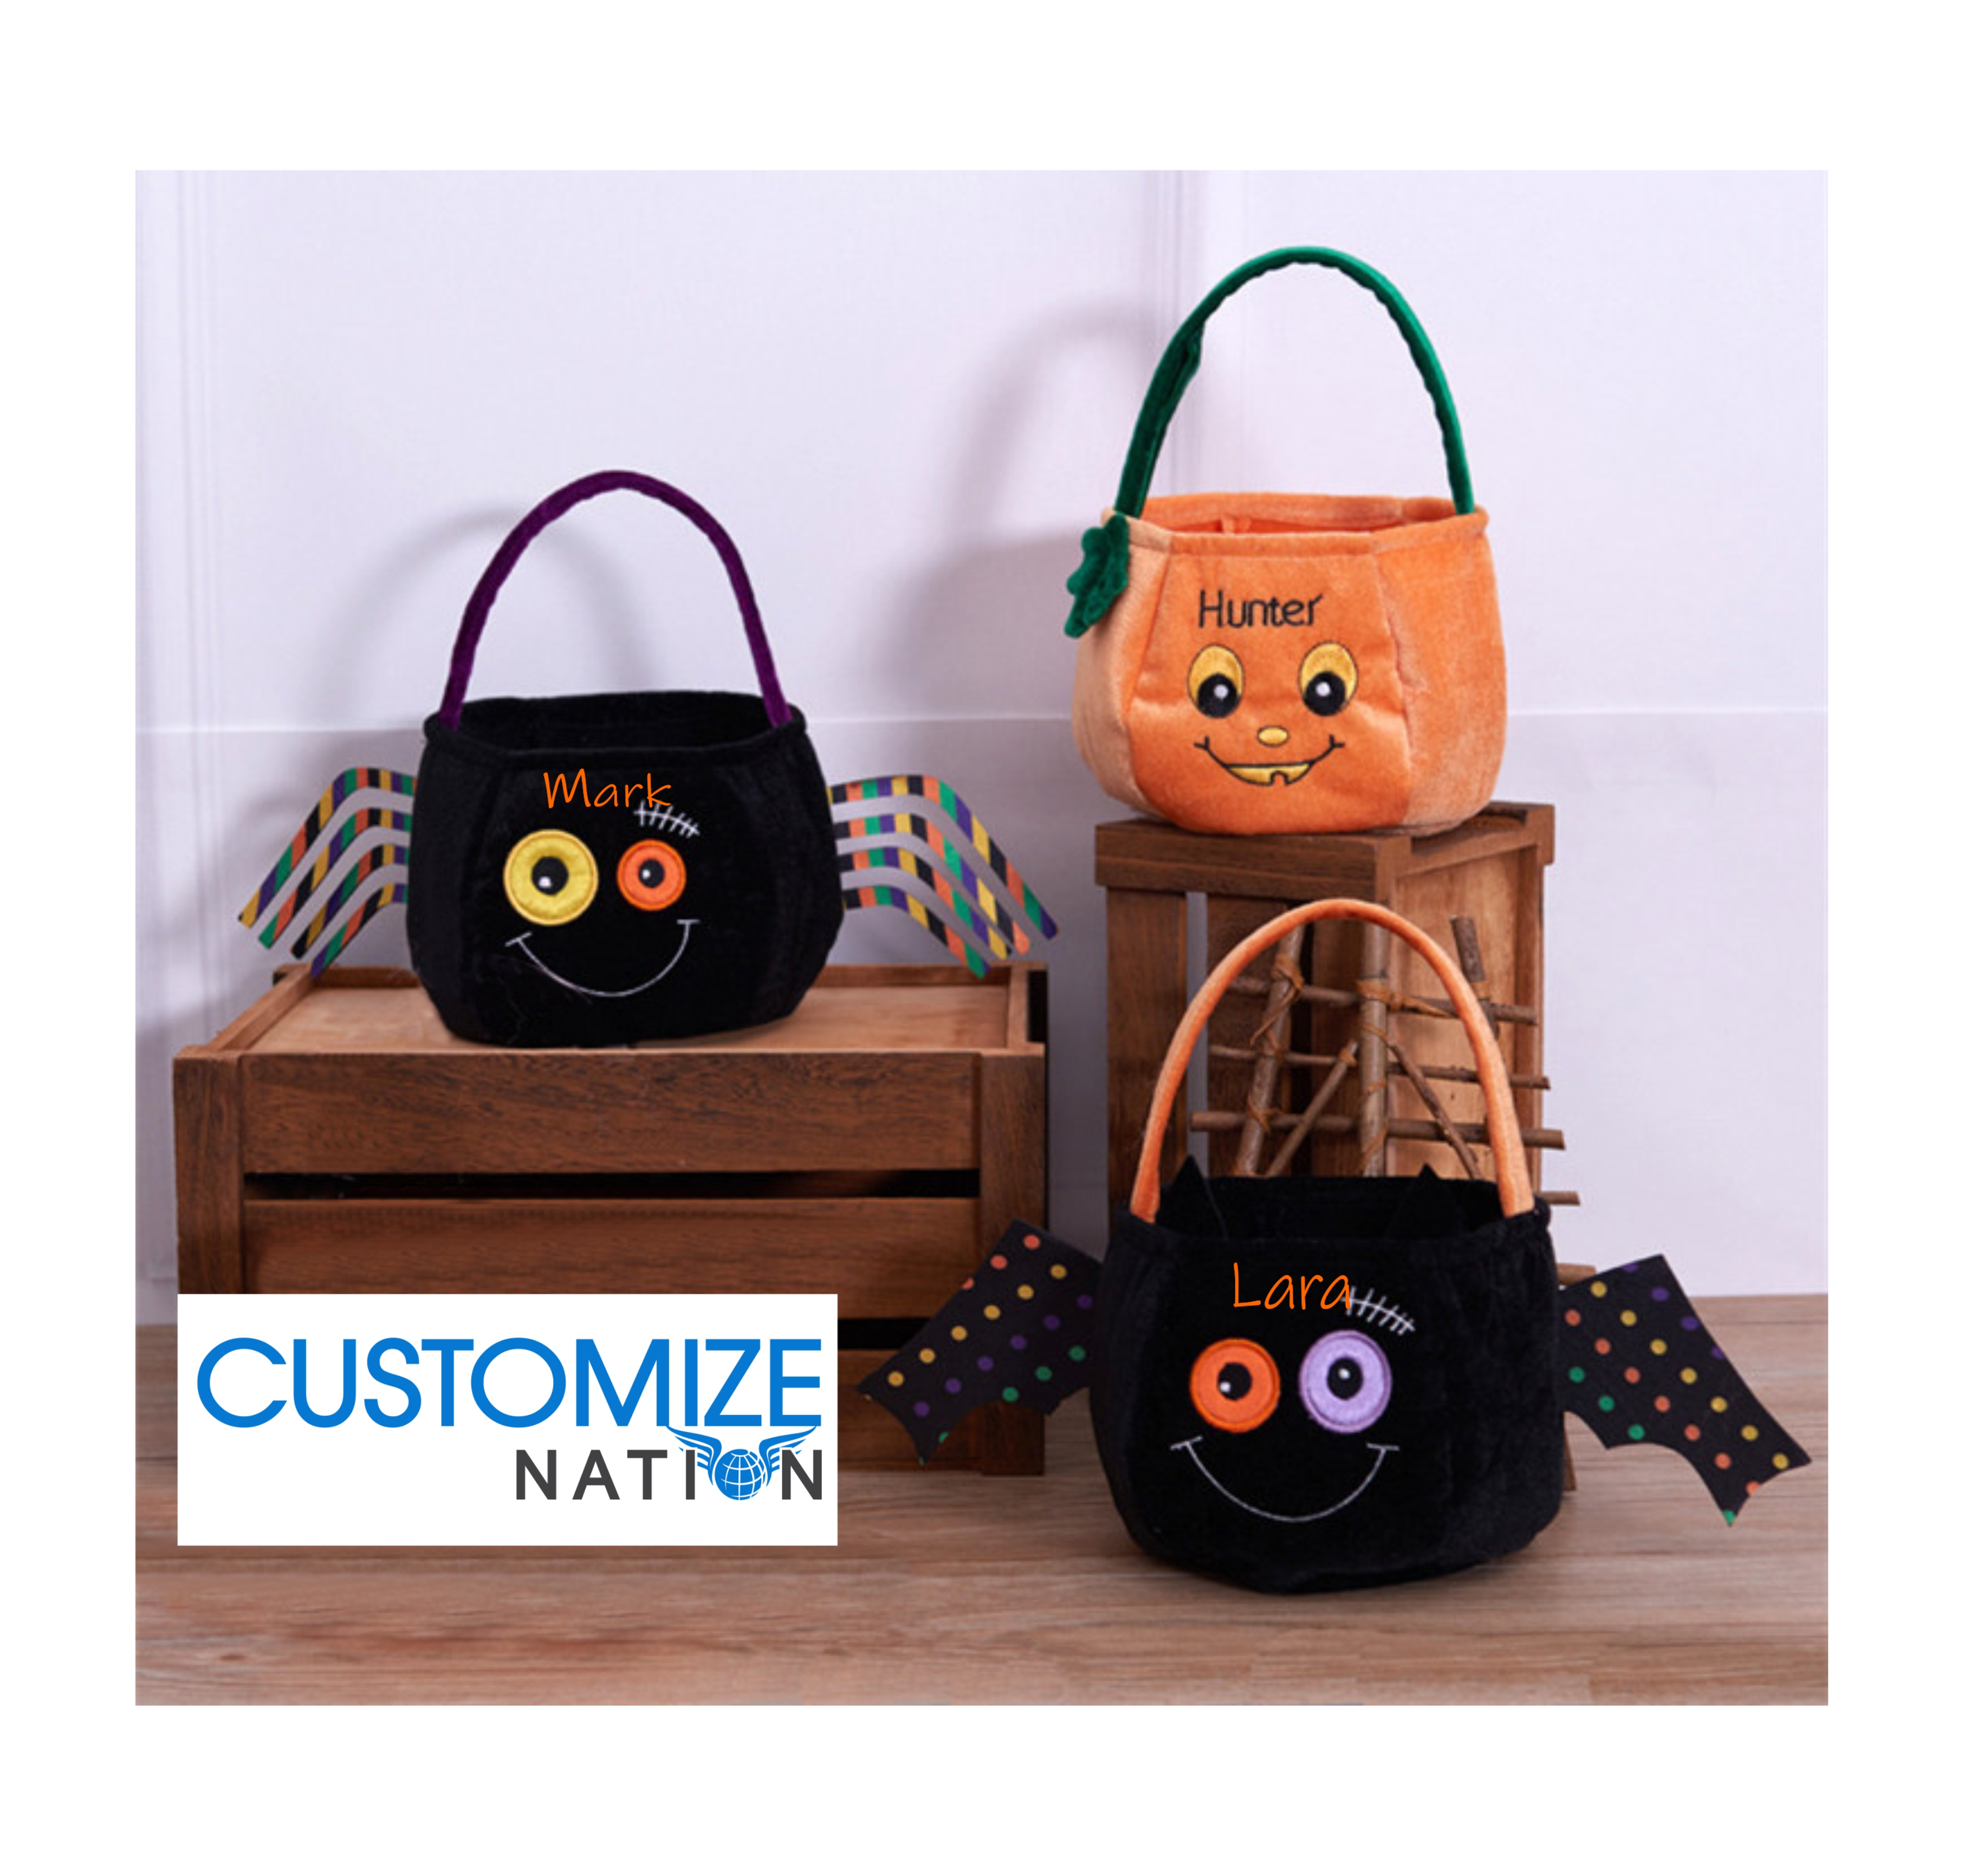 Halloween Trick Or Treat Bags Personalized.Personalized Embroidery Halloween Trick Or Treat Bags